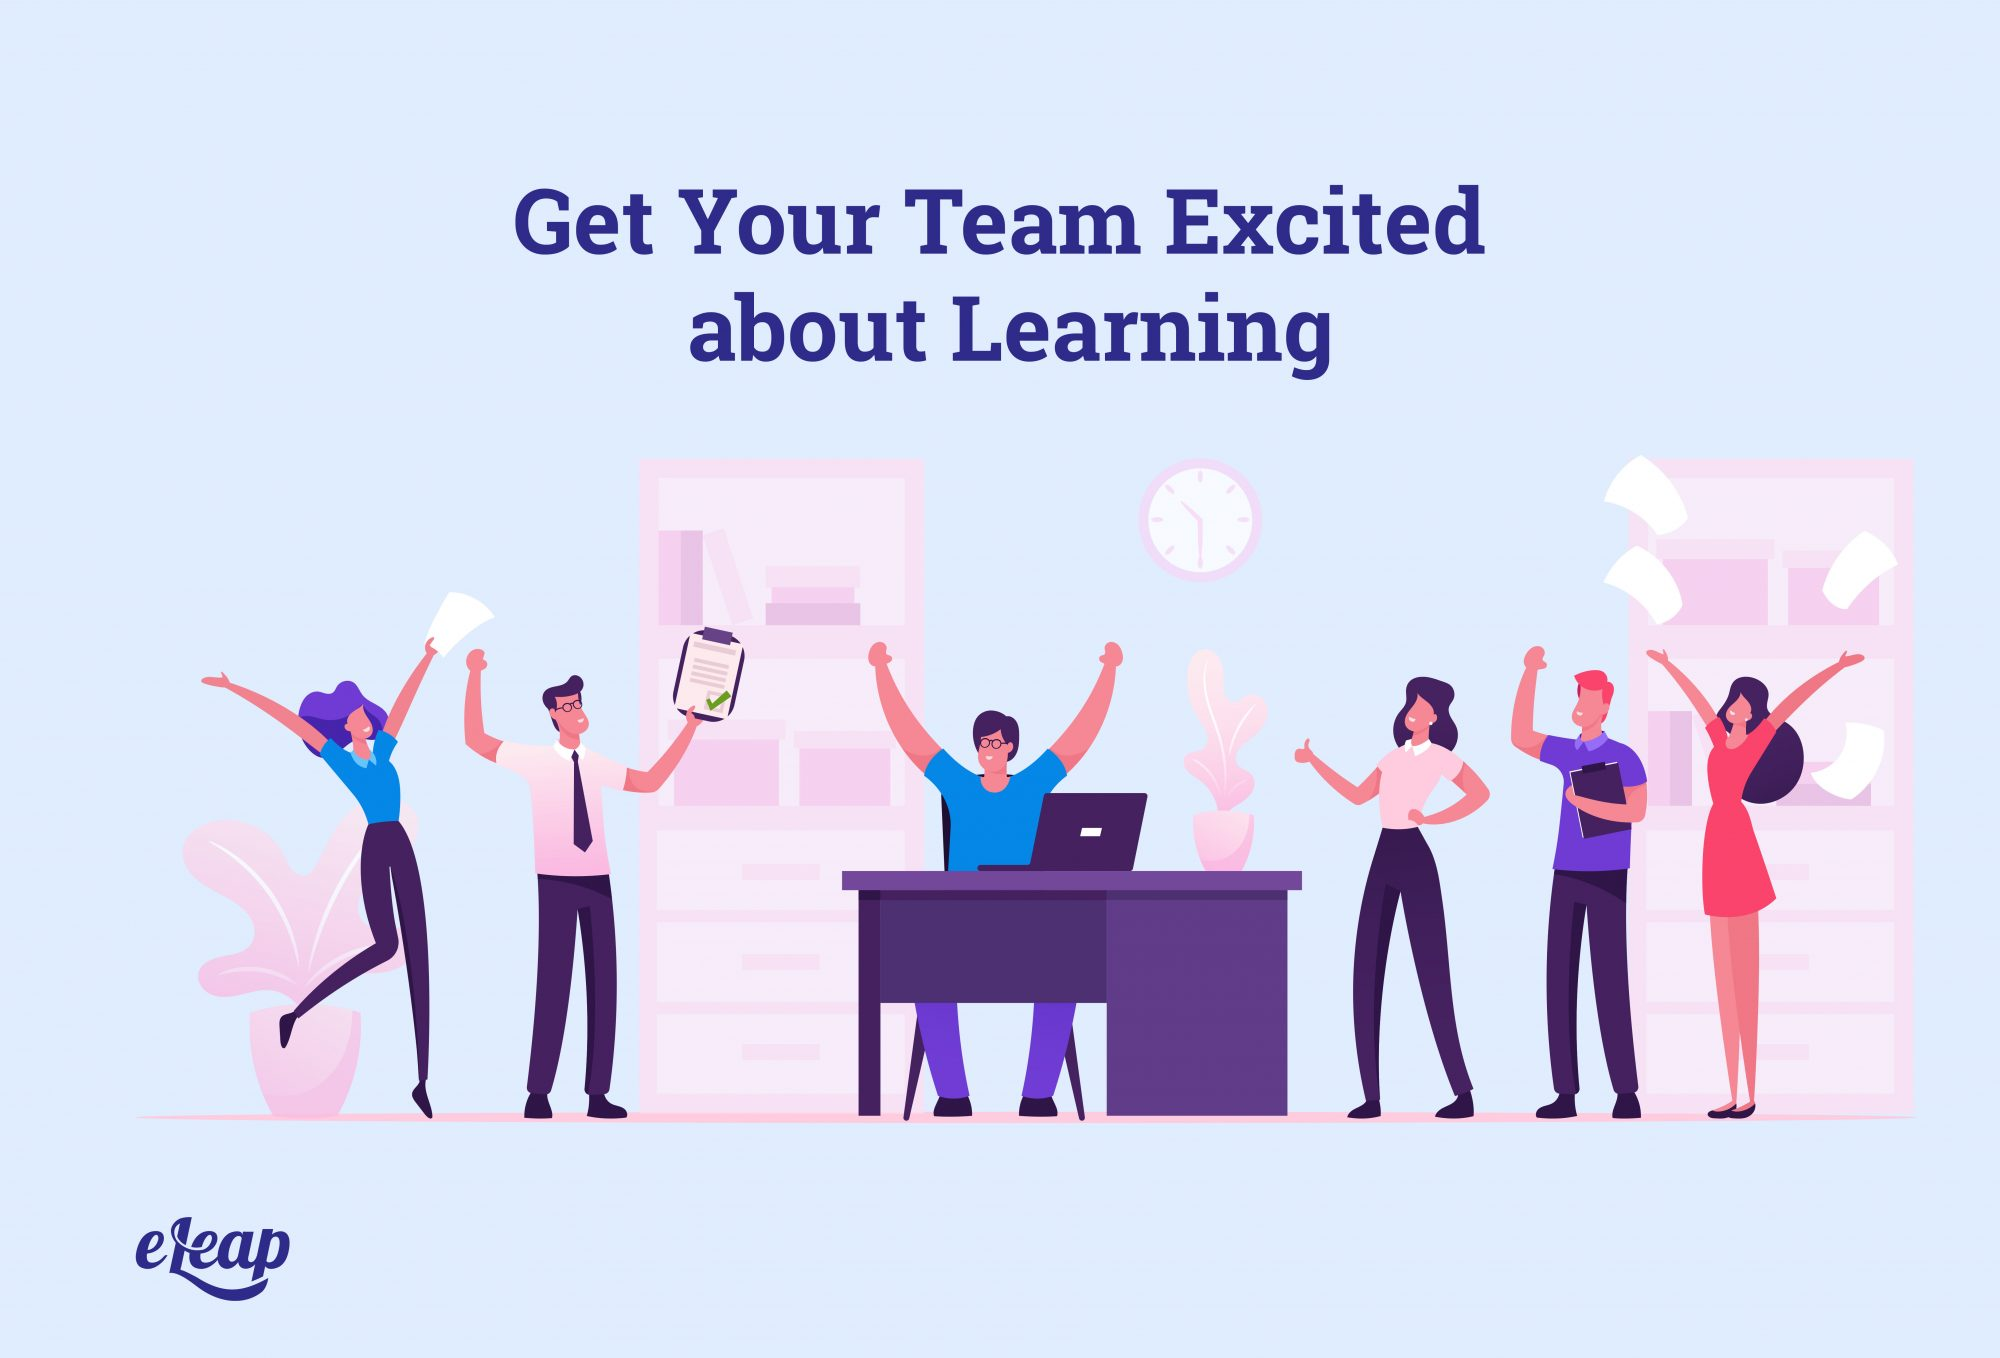 Get Your Team Excited about Learning